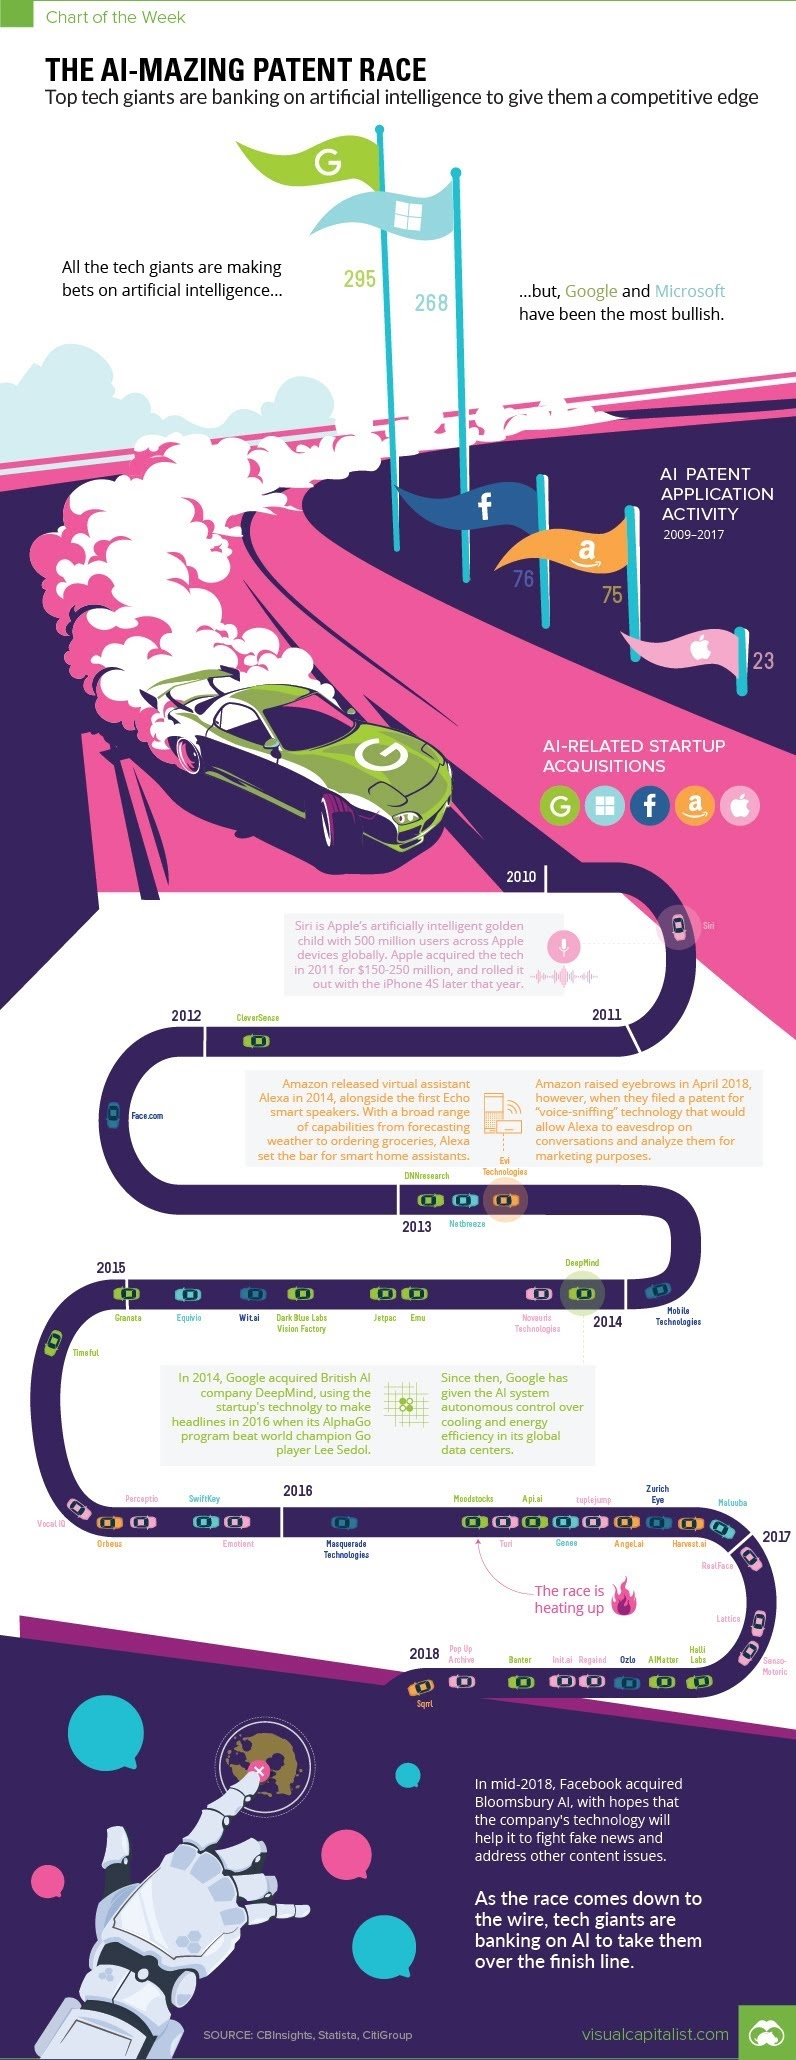 THE AI-MAZING PATENT RACE #INFOGRAPHIC